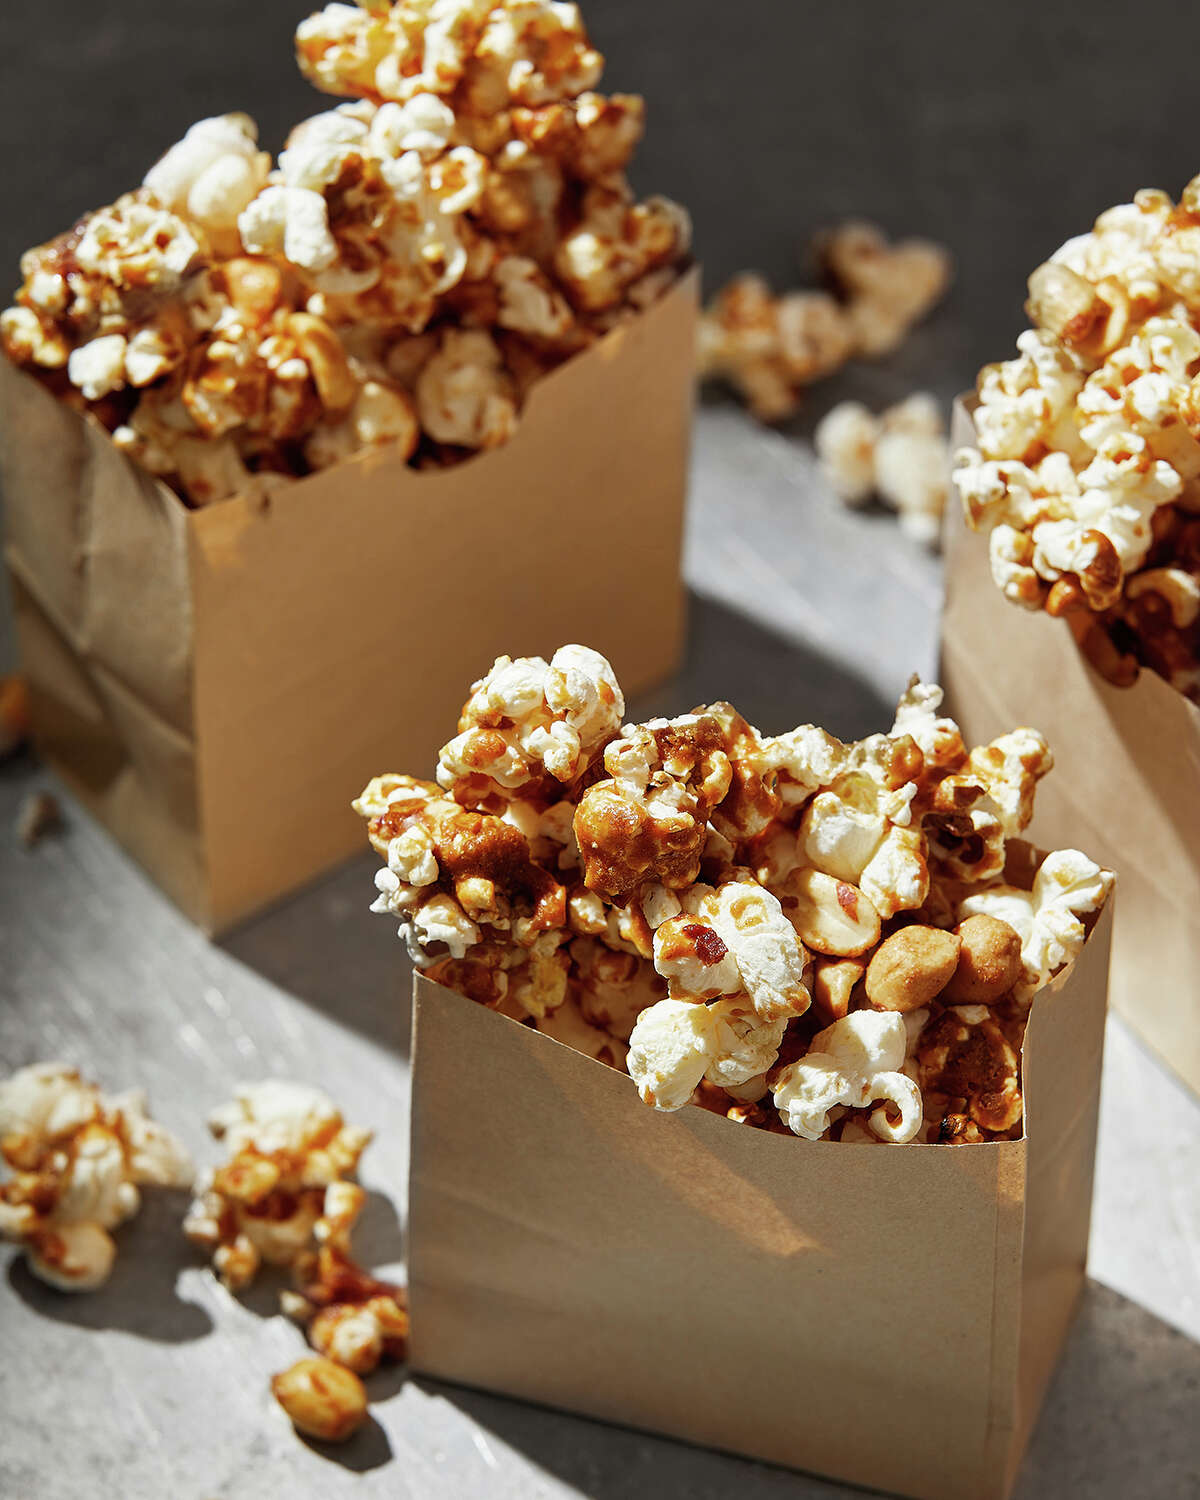 Spicy Caramel Popcorn. MUST CREDIT: Photo for The Washington Post by Tom McCorkle; food styling for The Washington Post by Lisa Cherkasky